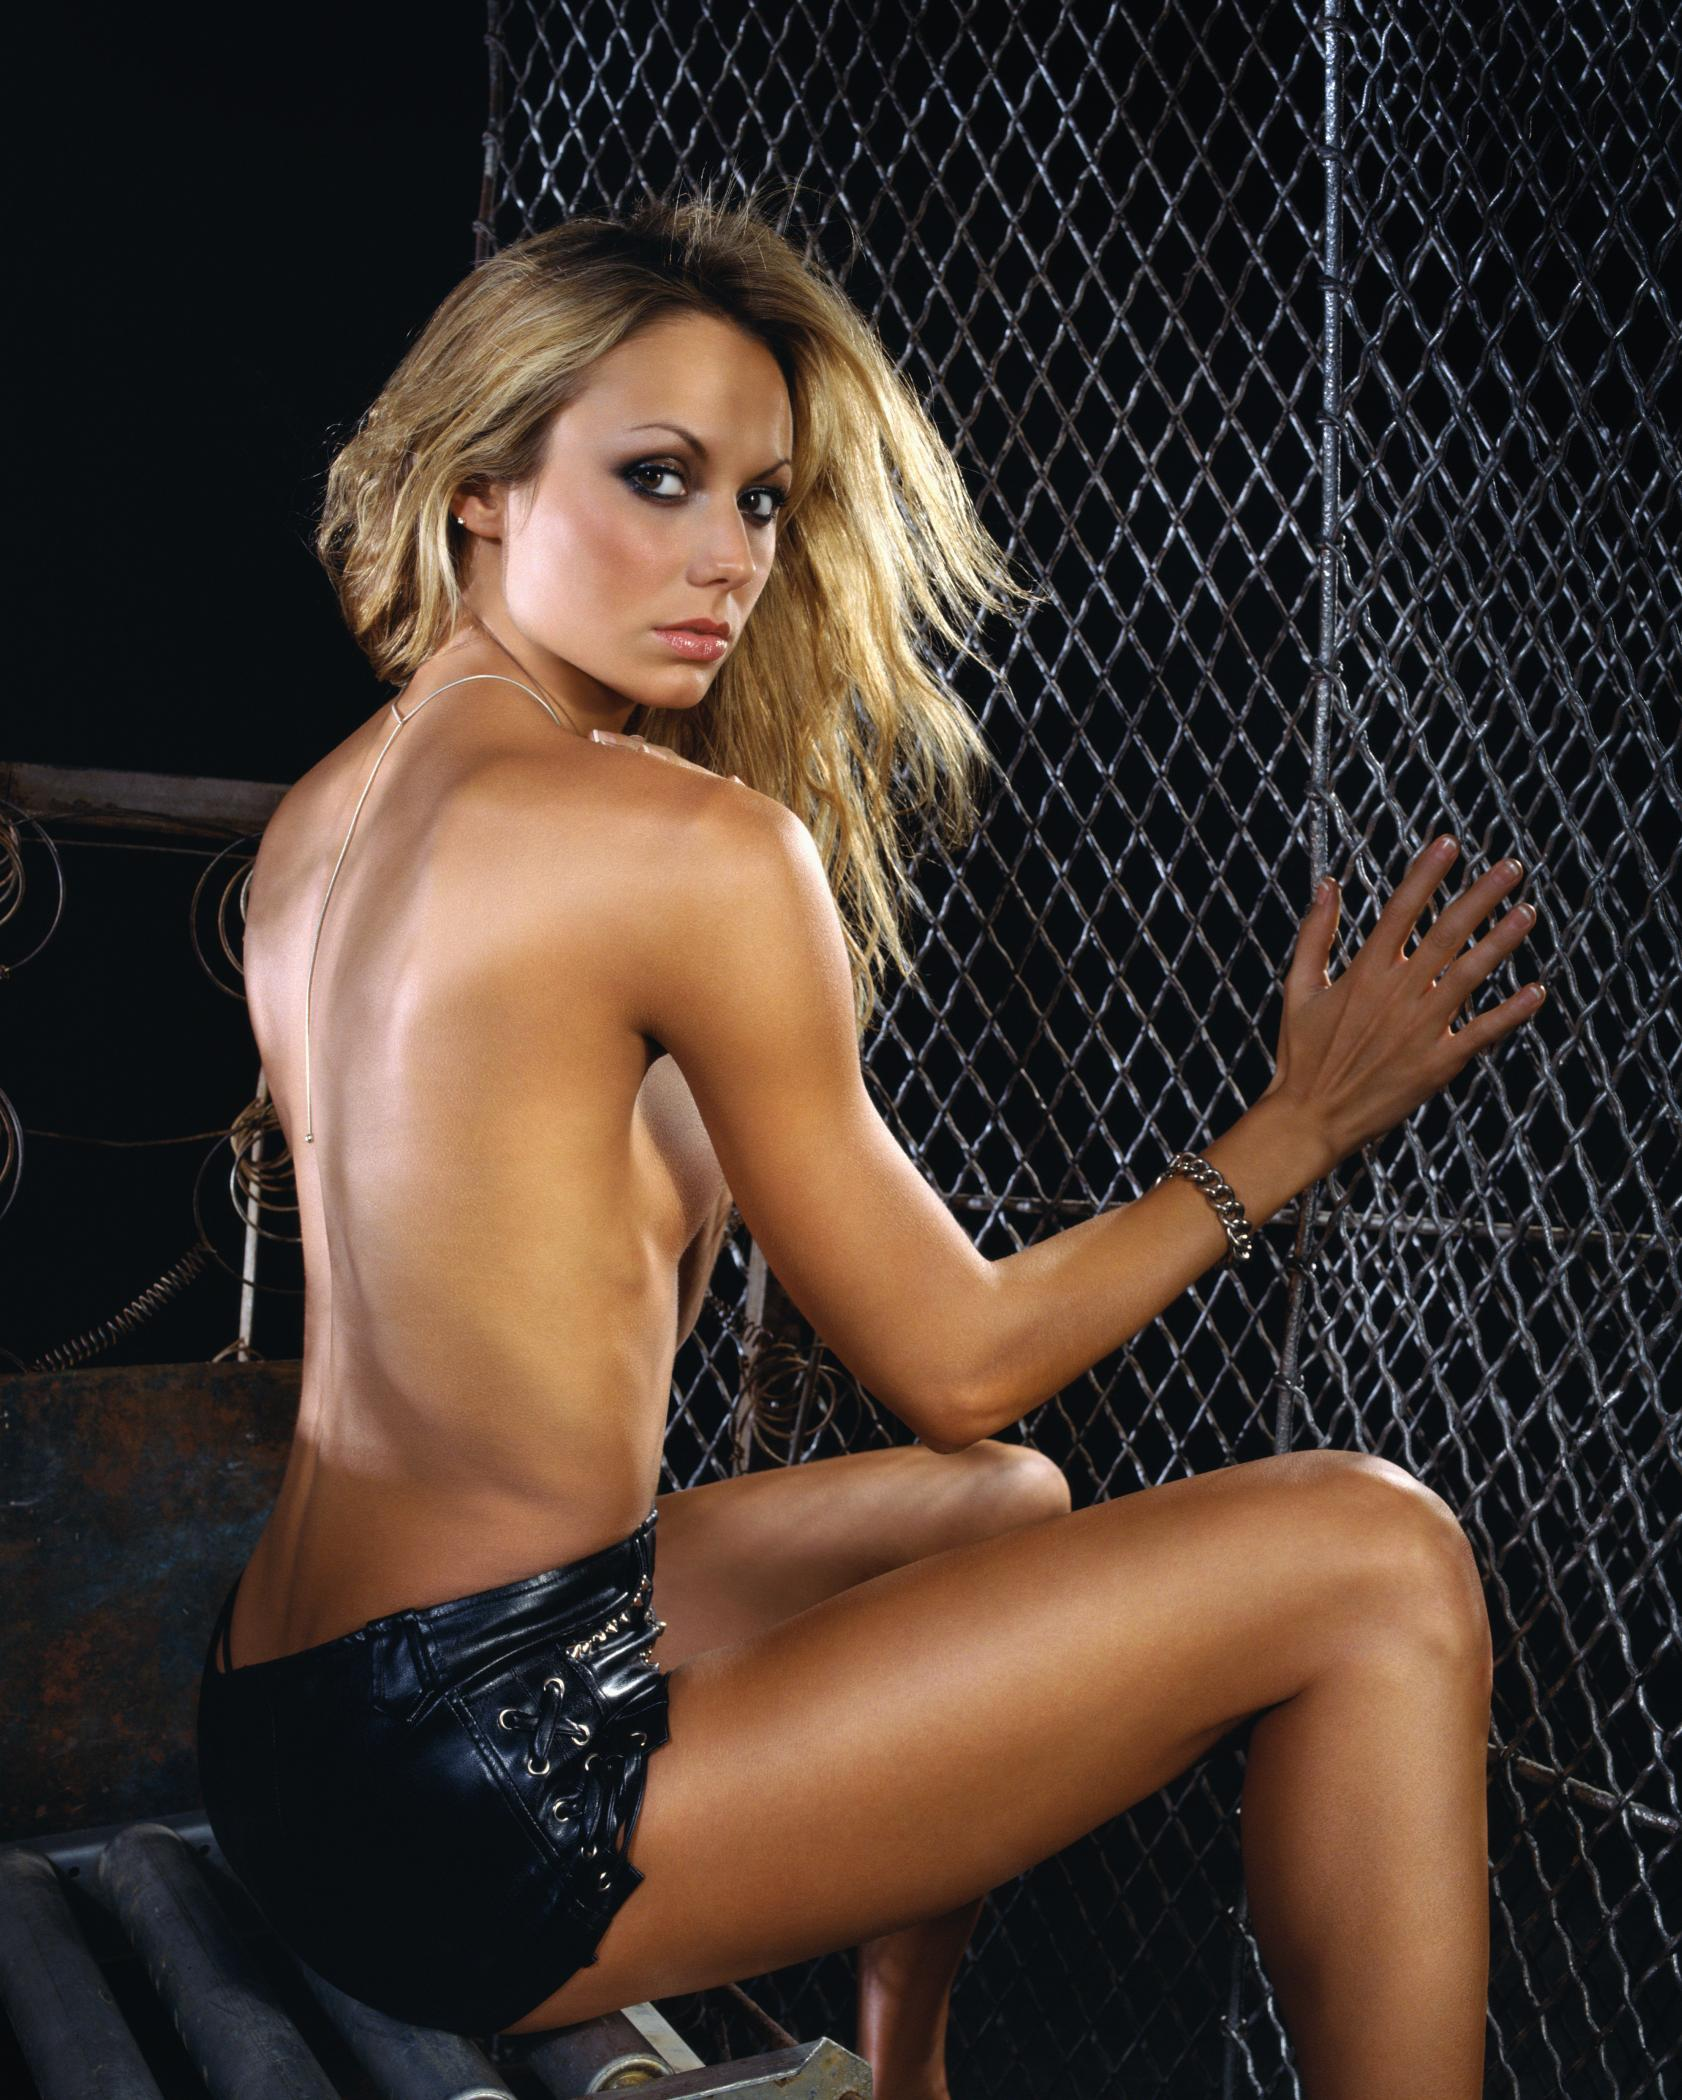 Stacy keibler naked free hq photo porno